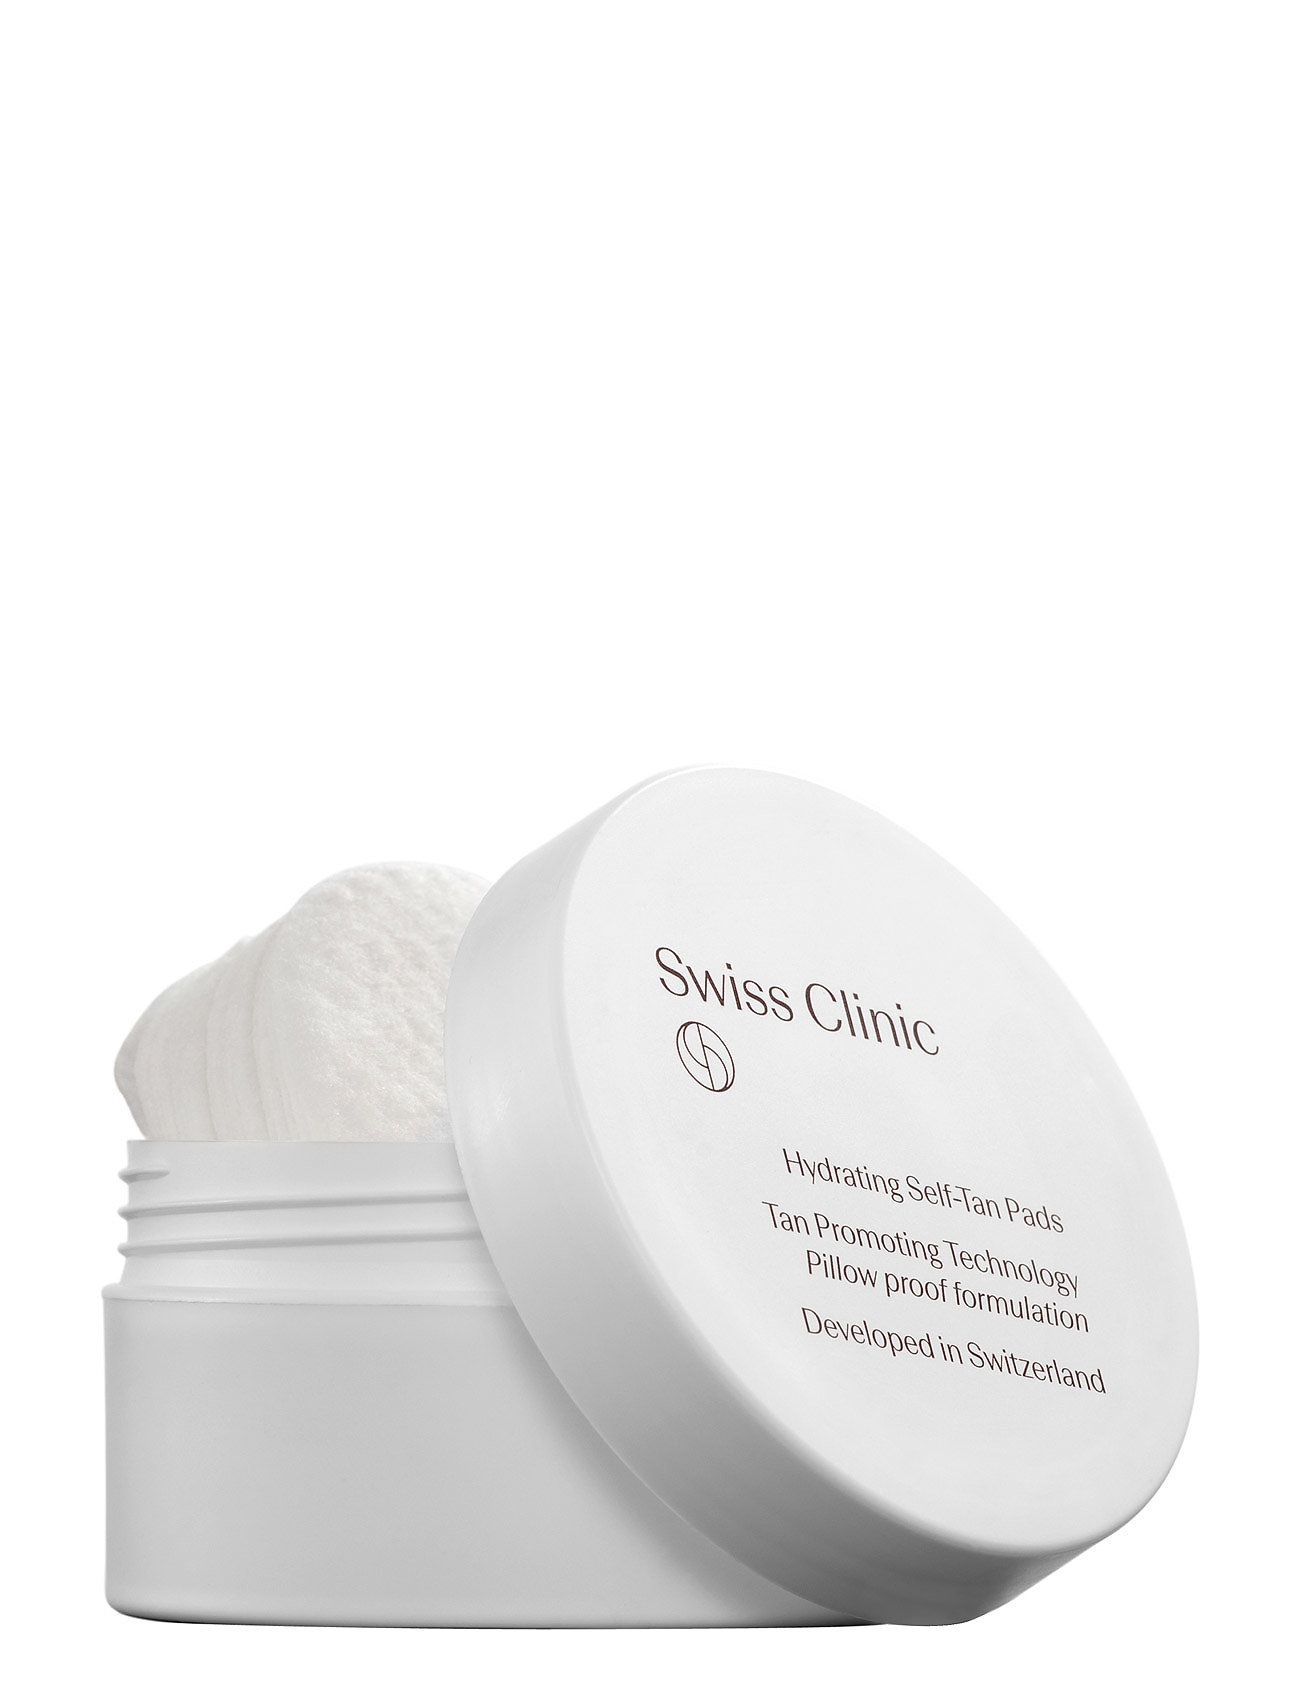 Swiss Clinic Hydrating Self-Tan pads - NO COLOR